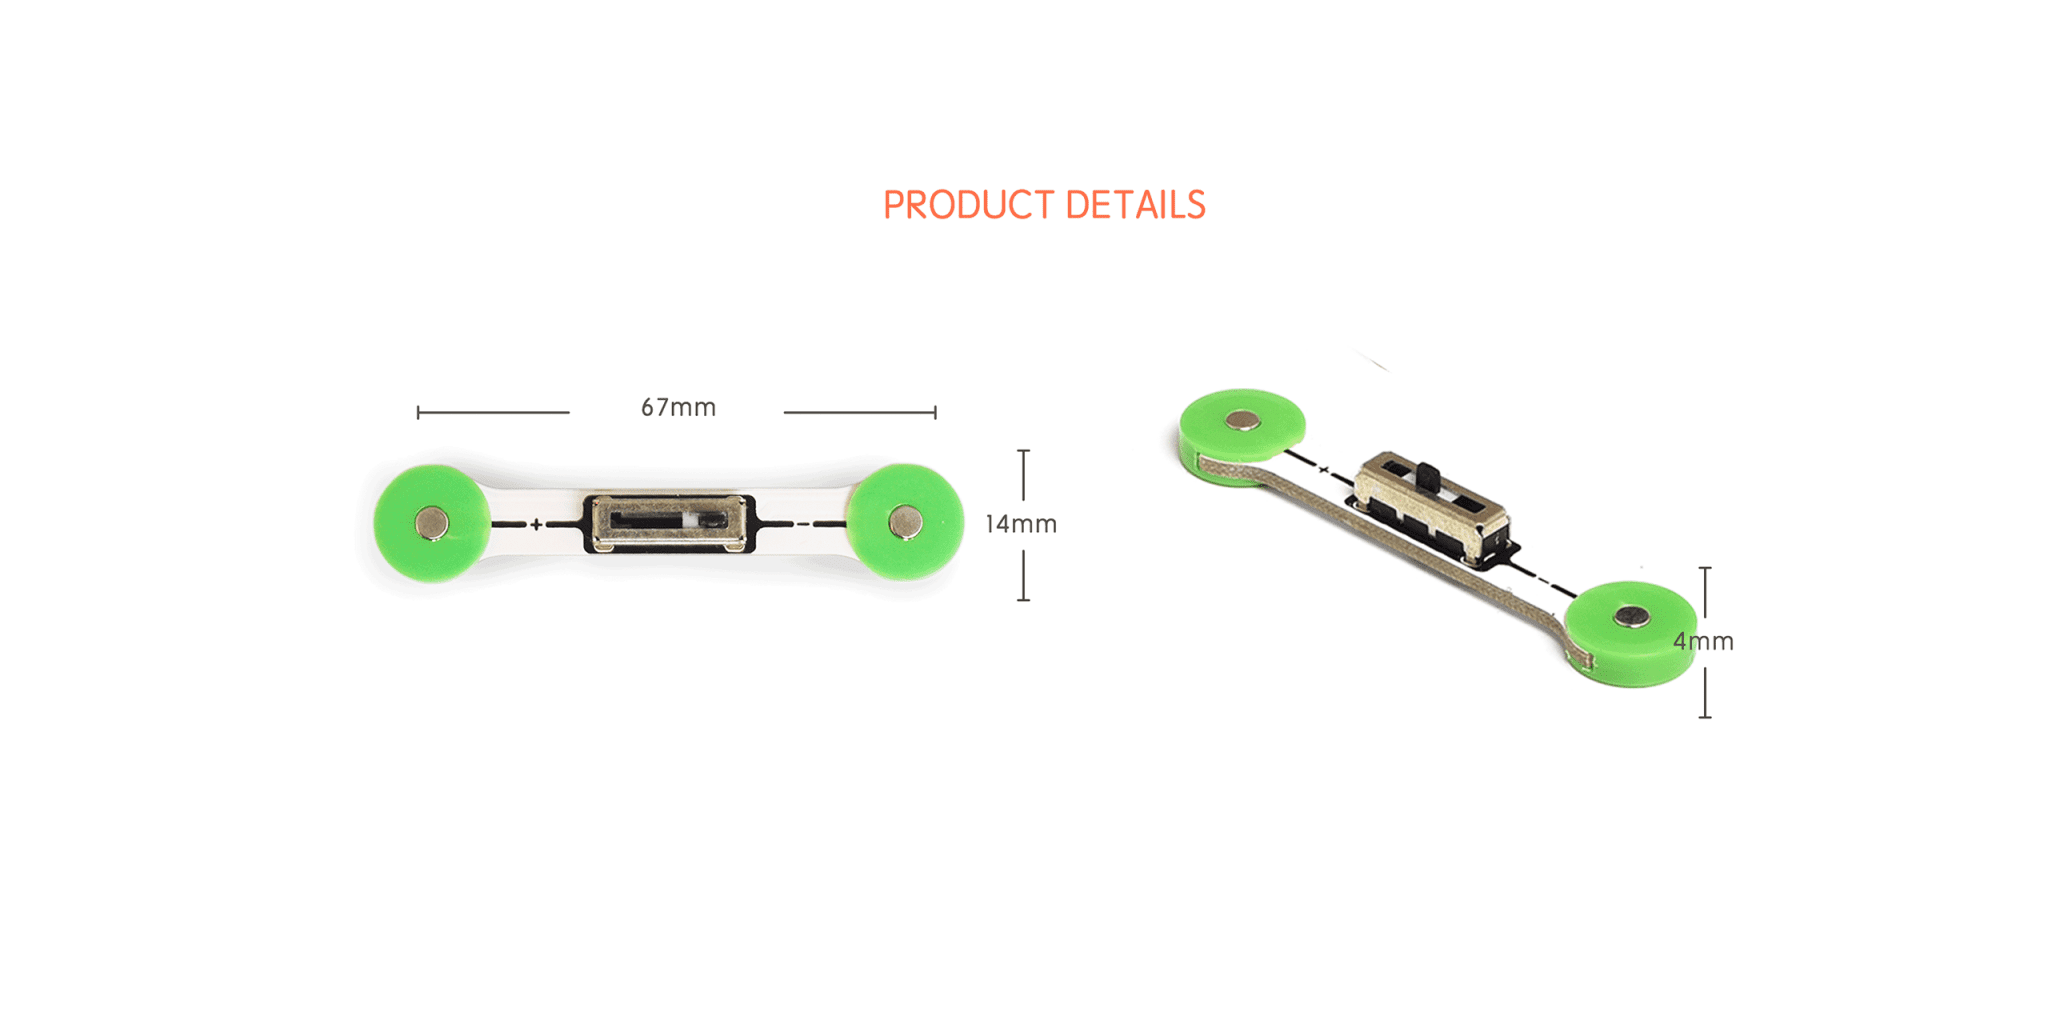 mPuzzle product details - Microduino